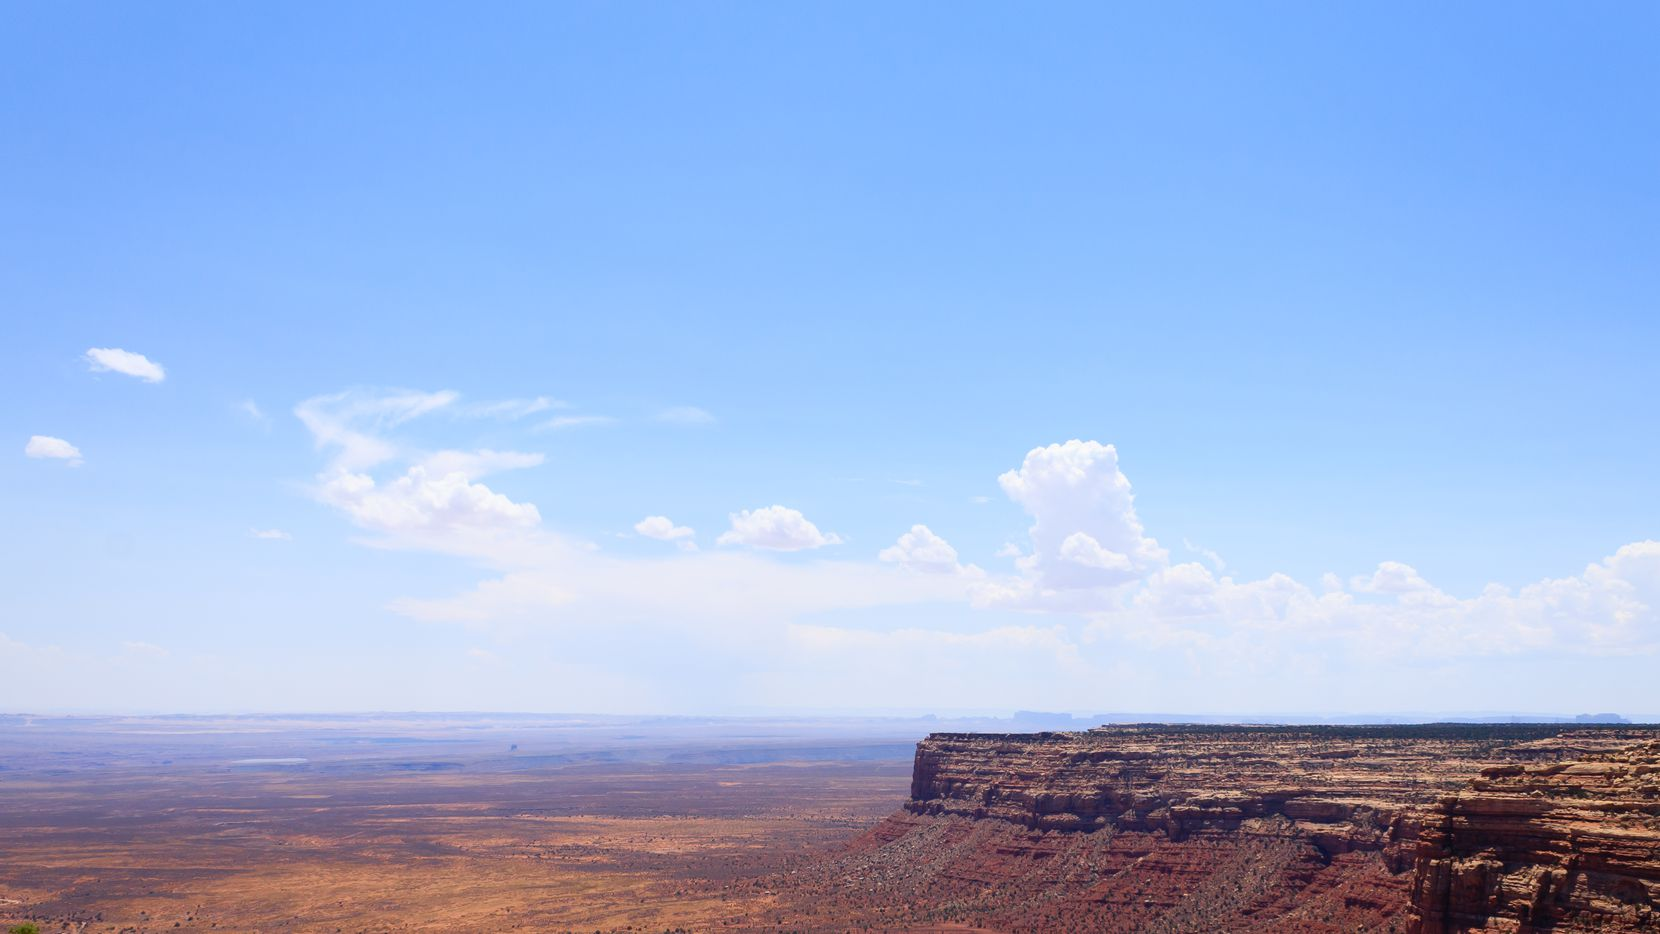 Arizona panorama from Moki Dugway, Muley Point Overlook.  Open space. United States of America